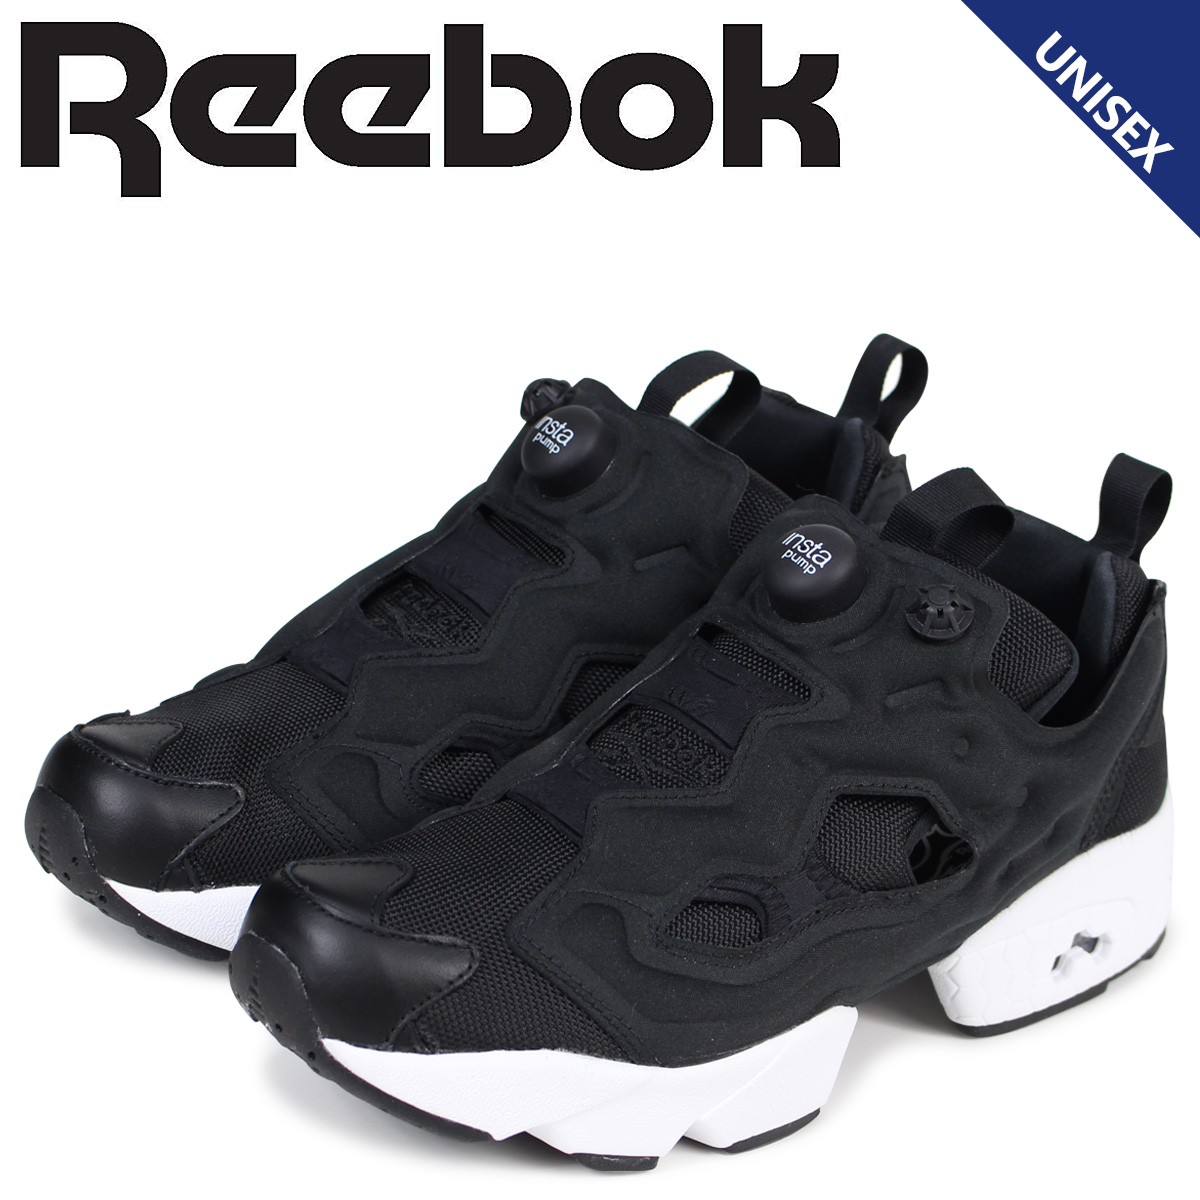 Reebok Reebok pump fury sneakers INSTAPUMP FURY OG V65750 men s women s shoes  black 515a1e6e2